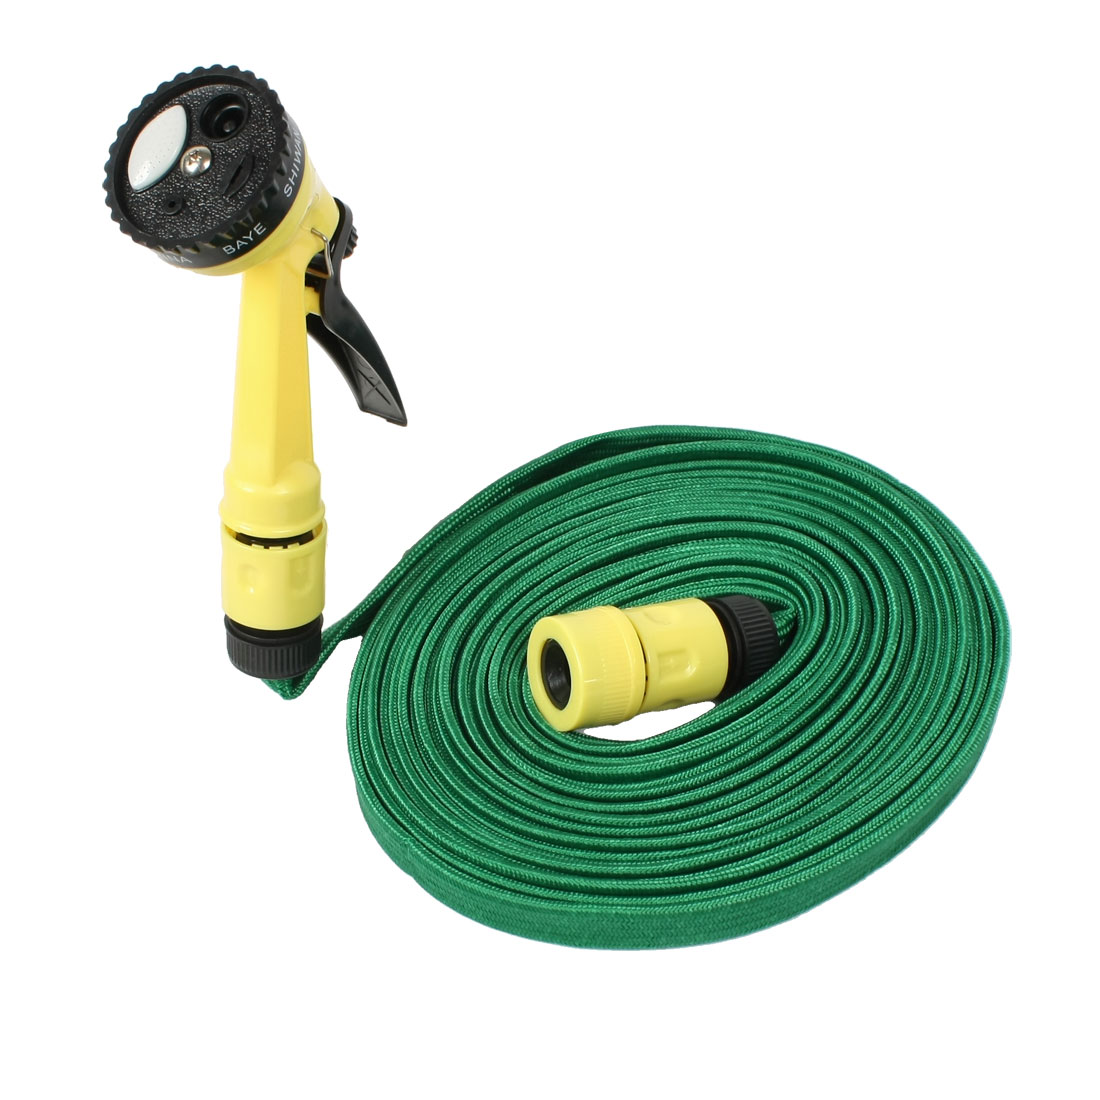 10M 32.8FT Flexible Water Hose Nozzle Yellow Grip Watering Nozzles